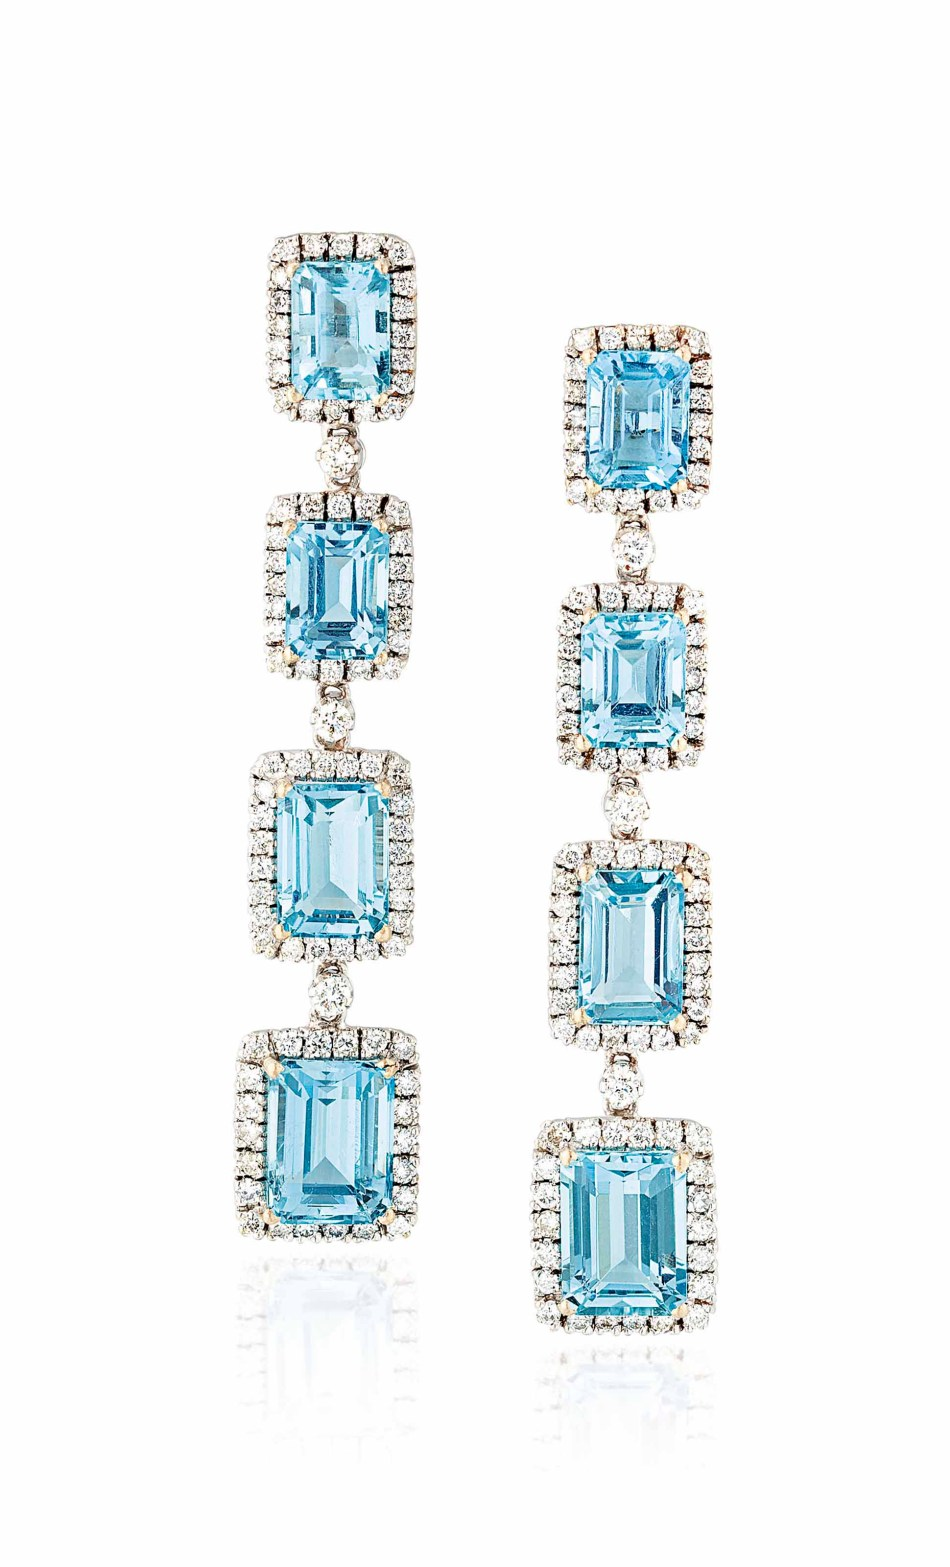 Lot 83 (aquamarine_and_diamond_earrings)